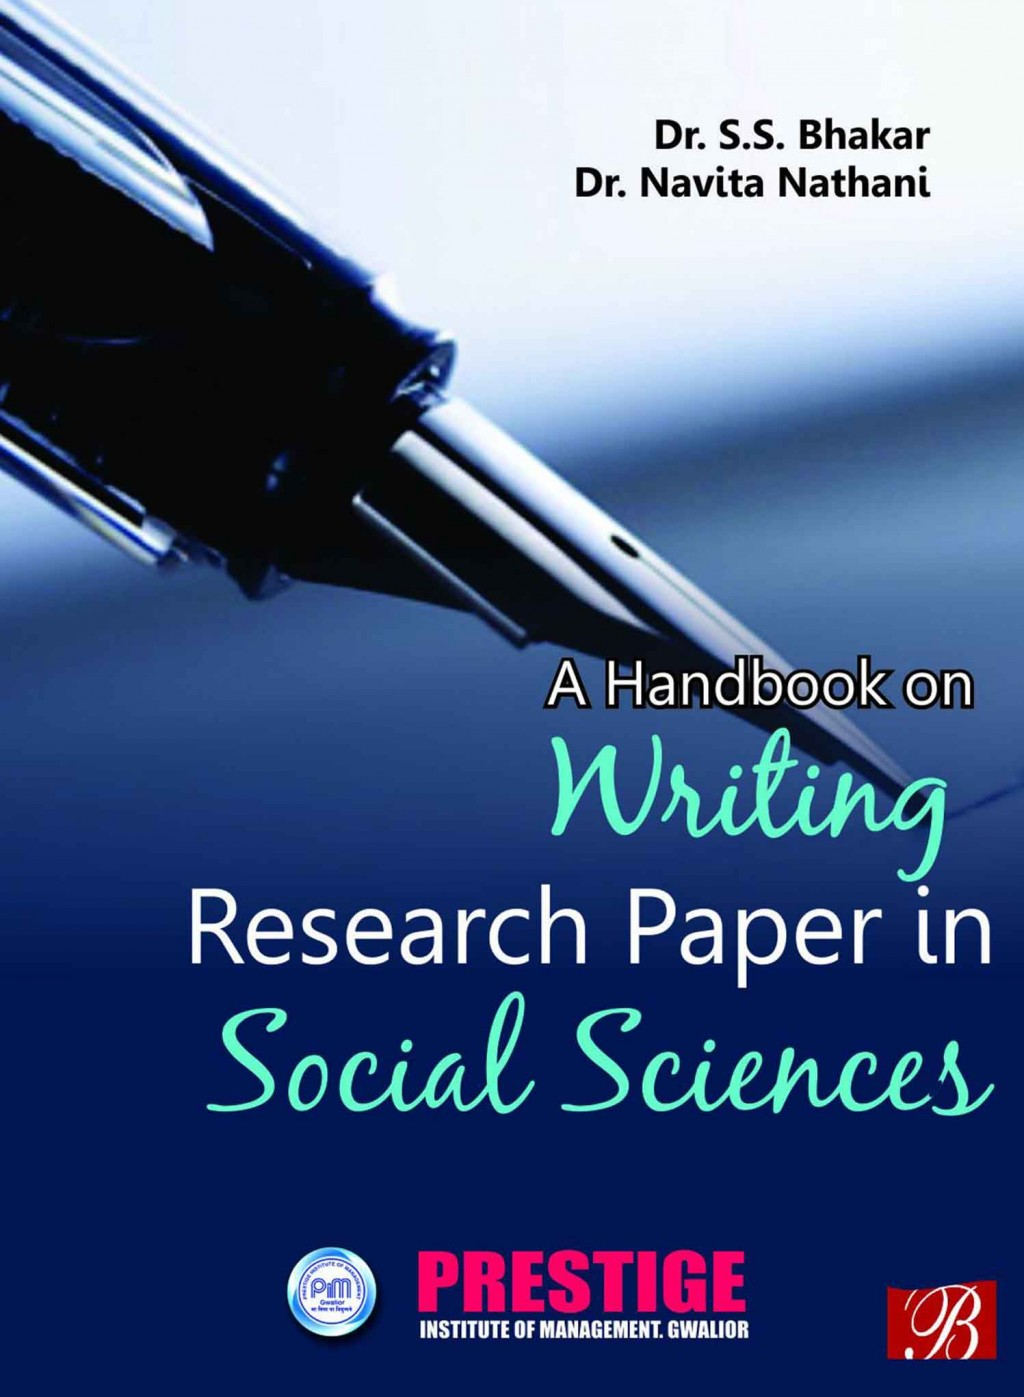 001 Handbook On Writing Research Paper In Social Sciences Stunning A Large